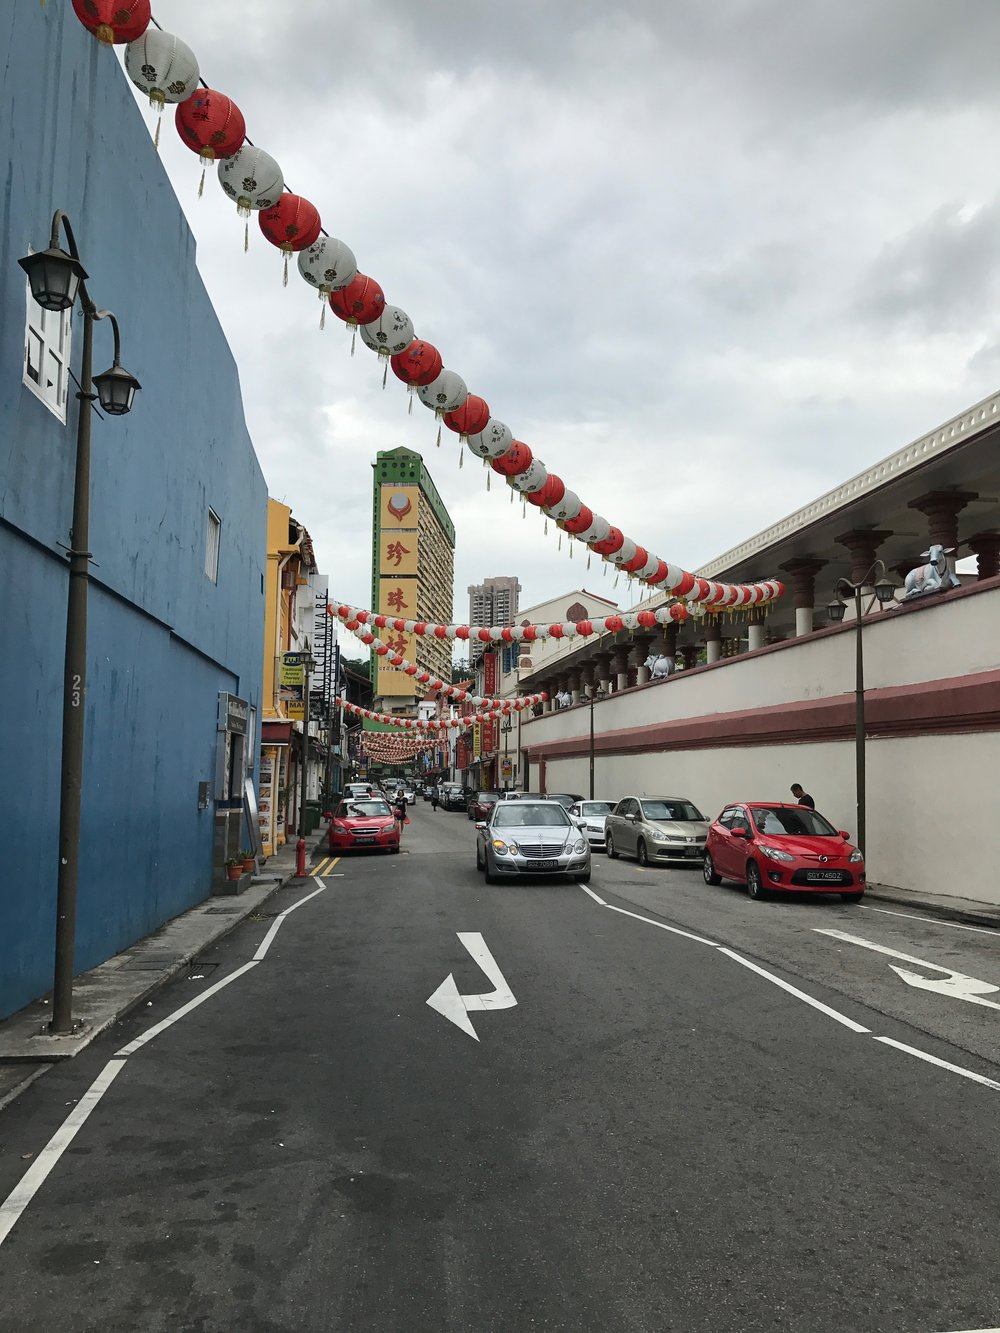 one of the quieter streets near the chinatown area.